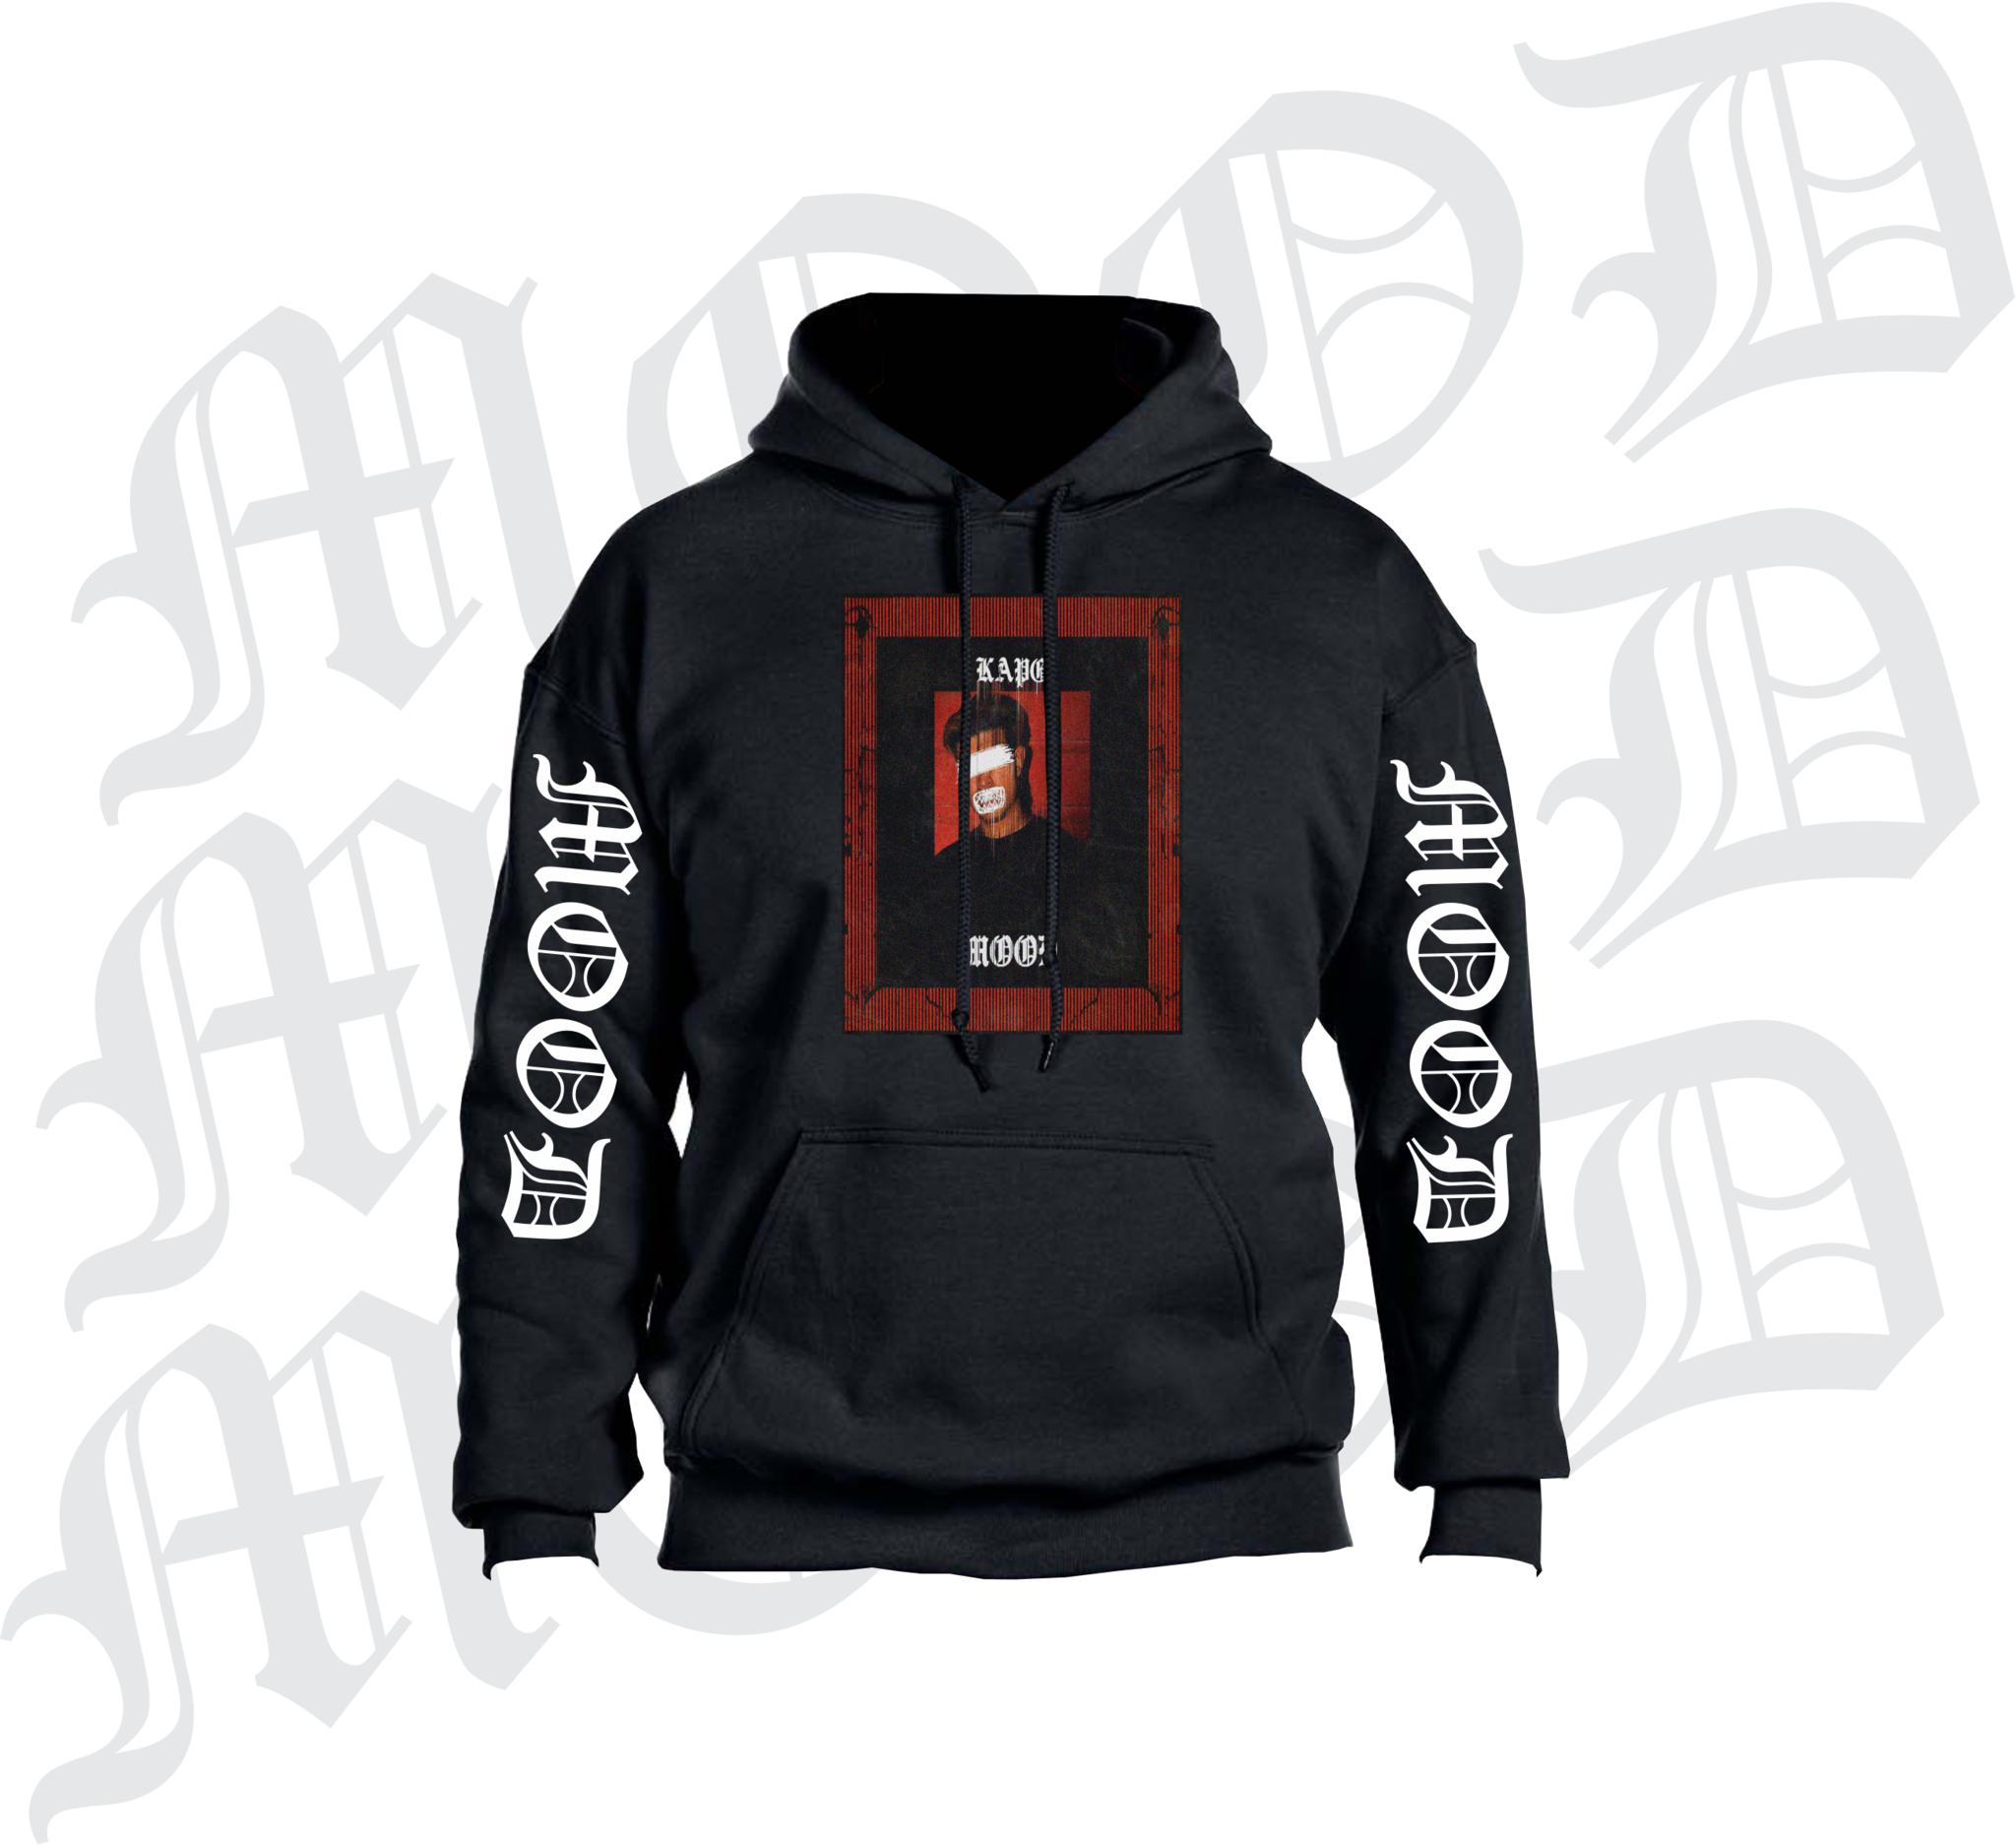 Hoodie clipart zippered. Black mood limited on